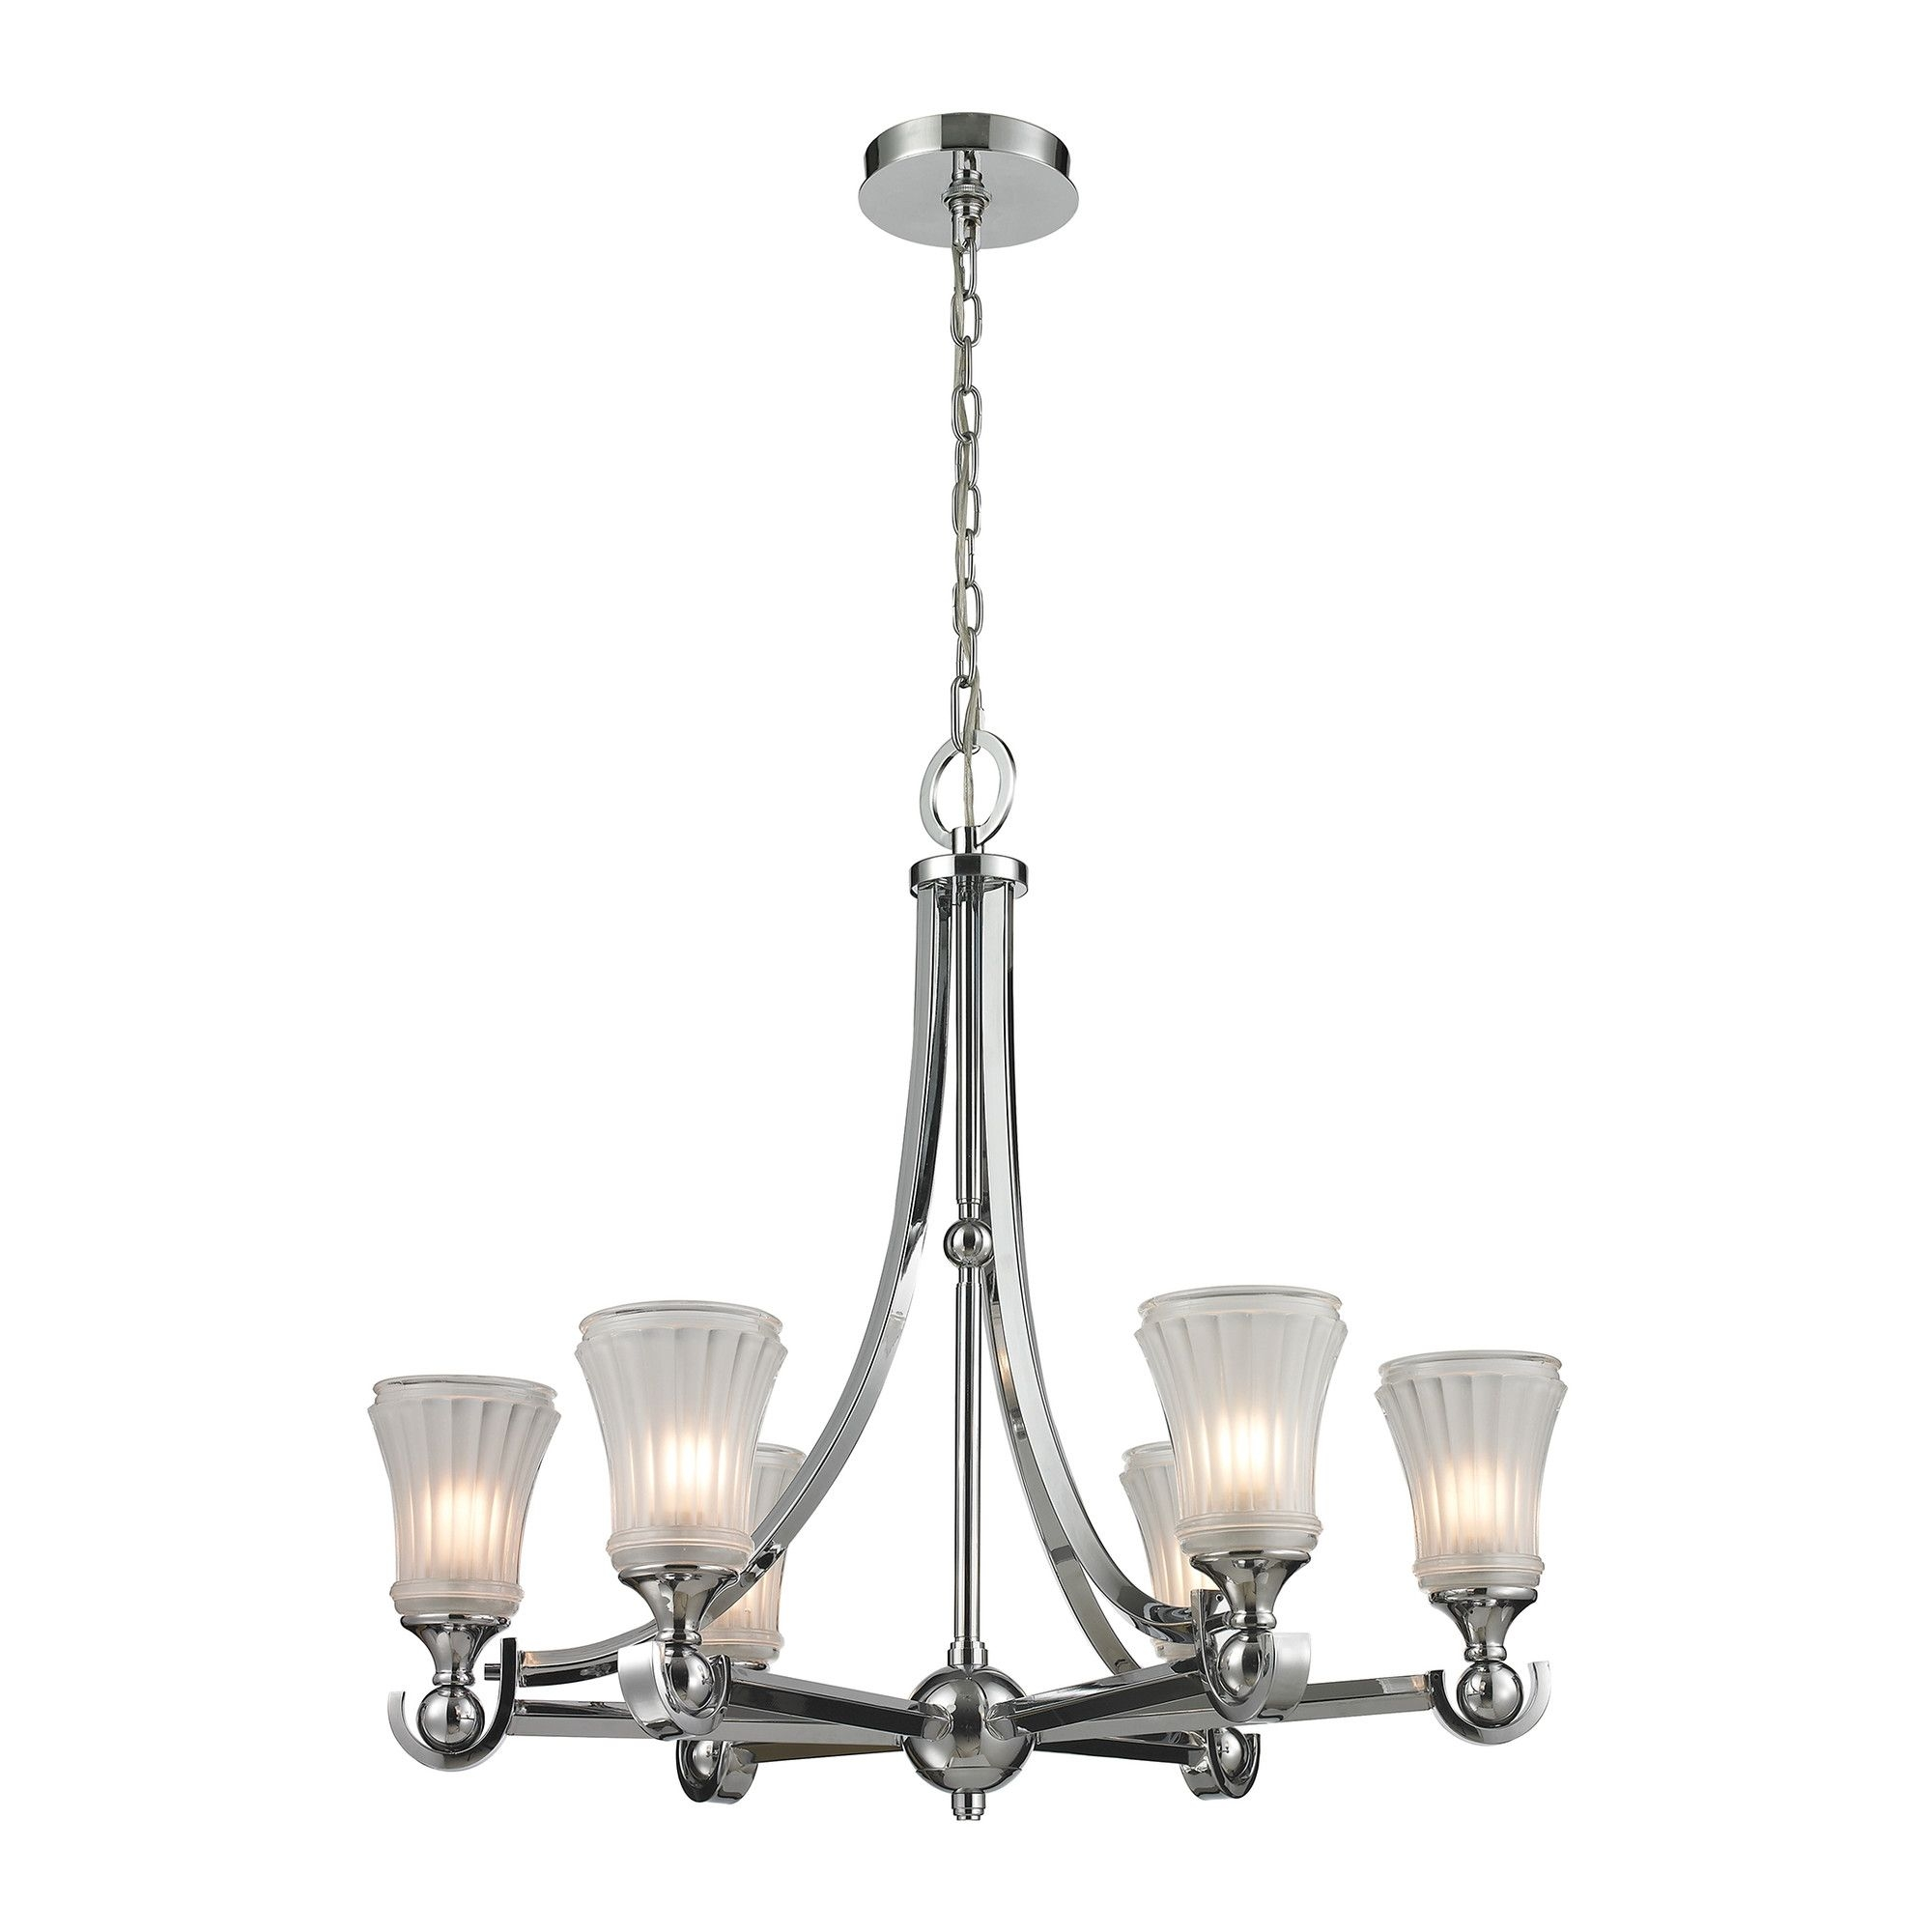 Jayden 6 Light Candle Chandelier Products Pinterest Candle With Regard To Metal Ball Candle Chandeliers (Image 19 of 25)